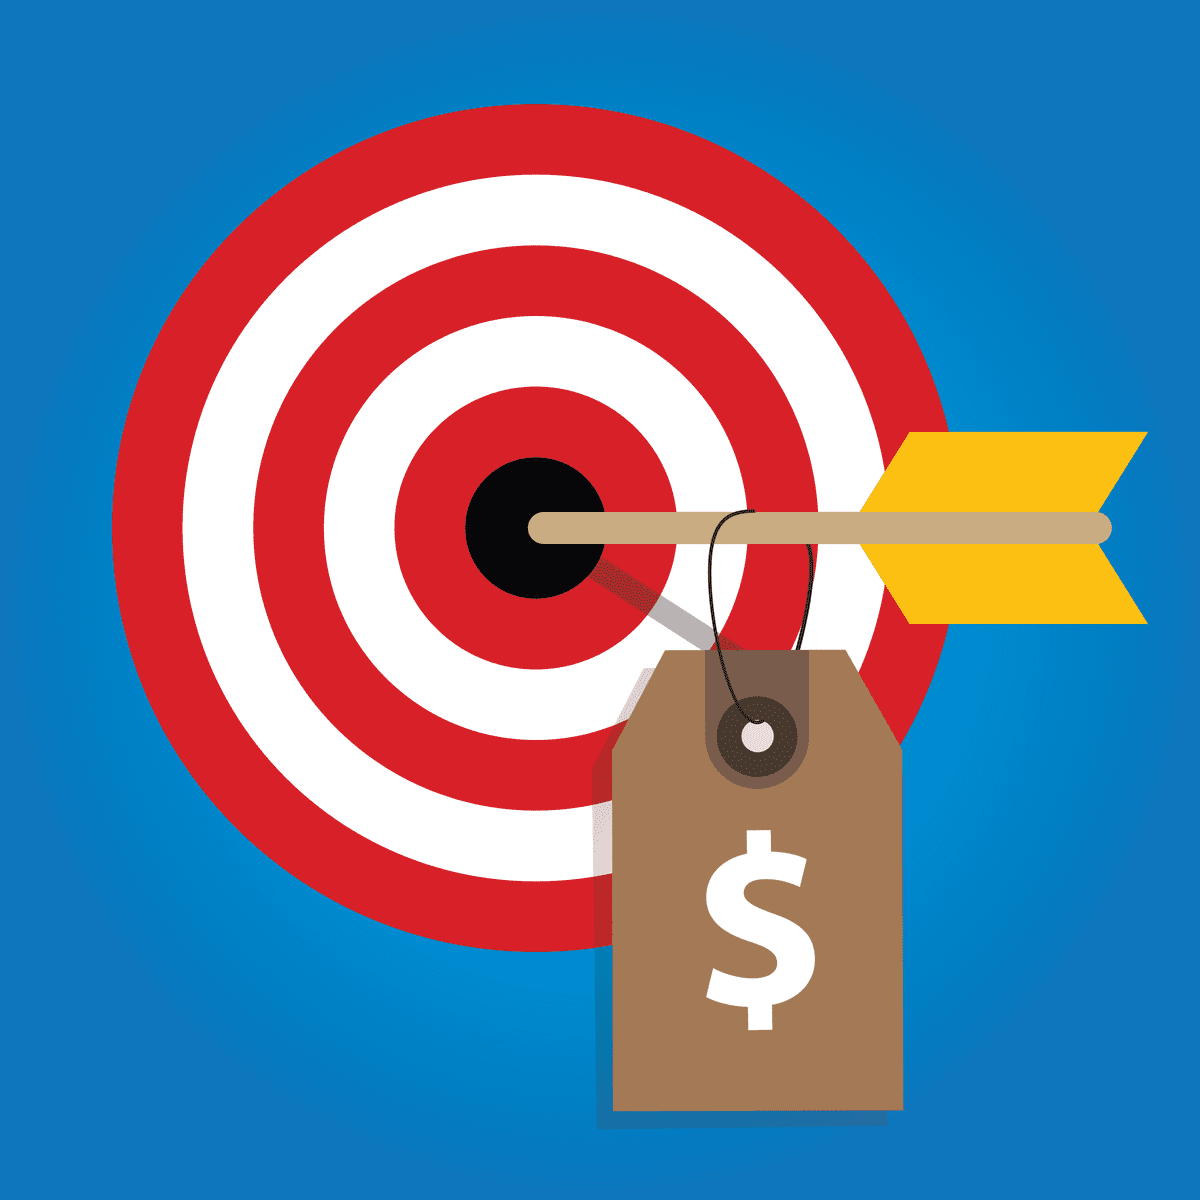 figure out pricing strategy